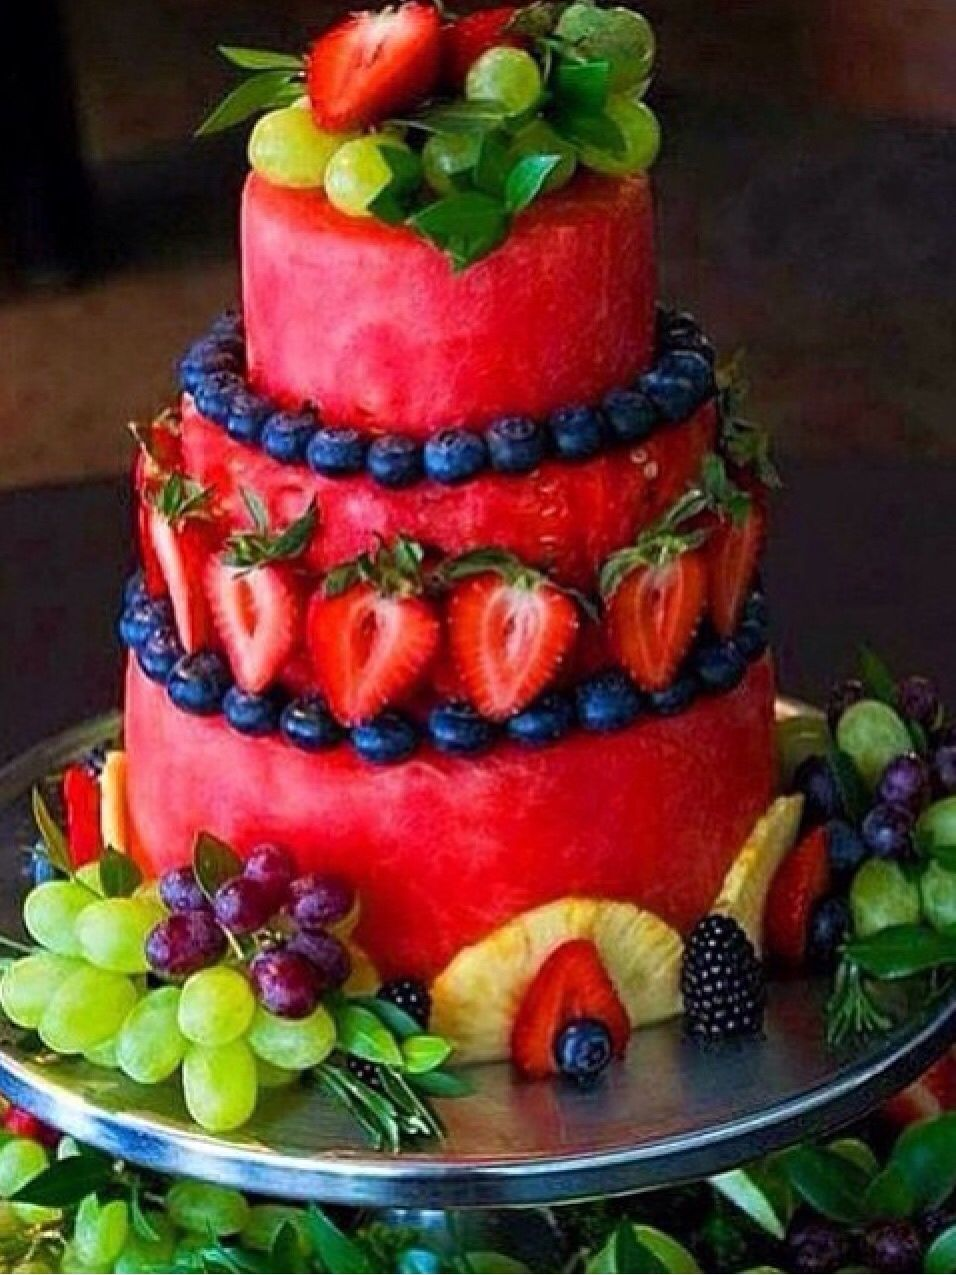 Fresh Fruit Cake made complete with fruit! Watermelon